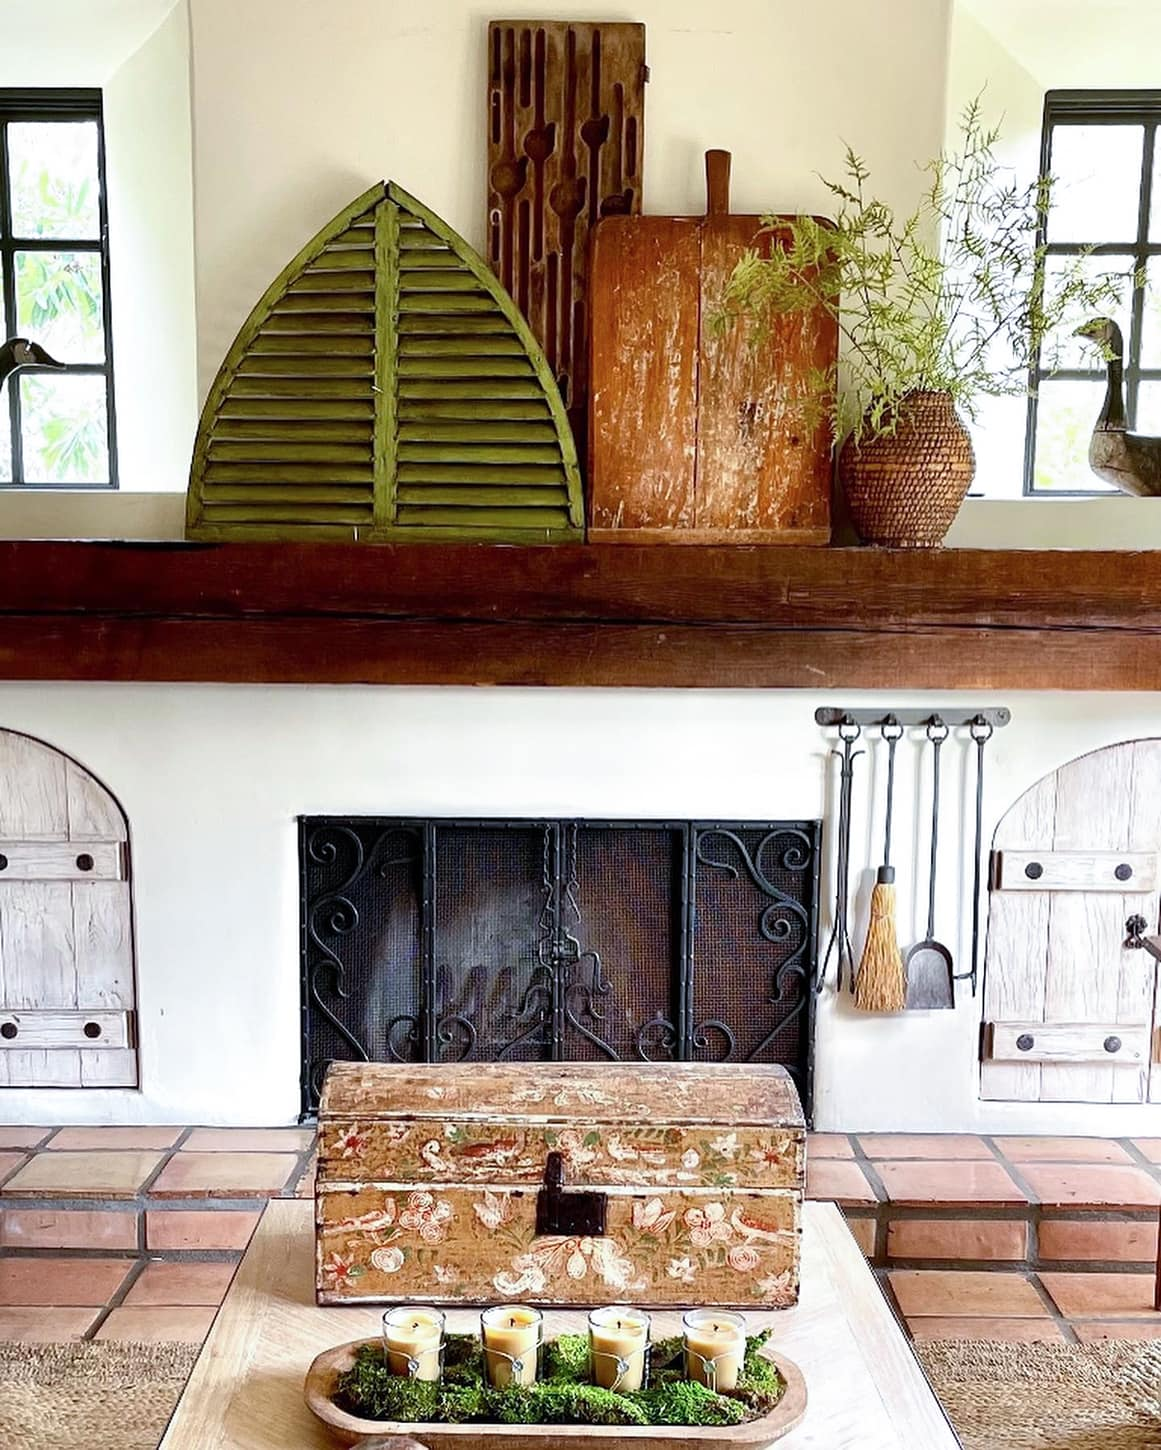 Cindy Hattersley's family room in her California home